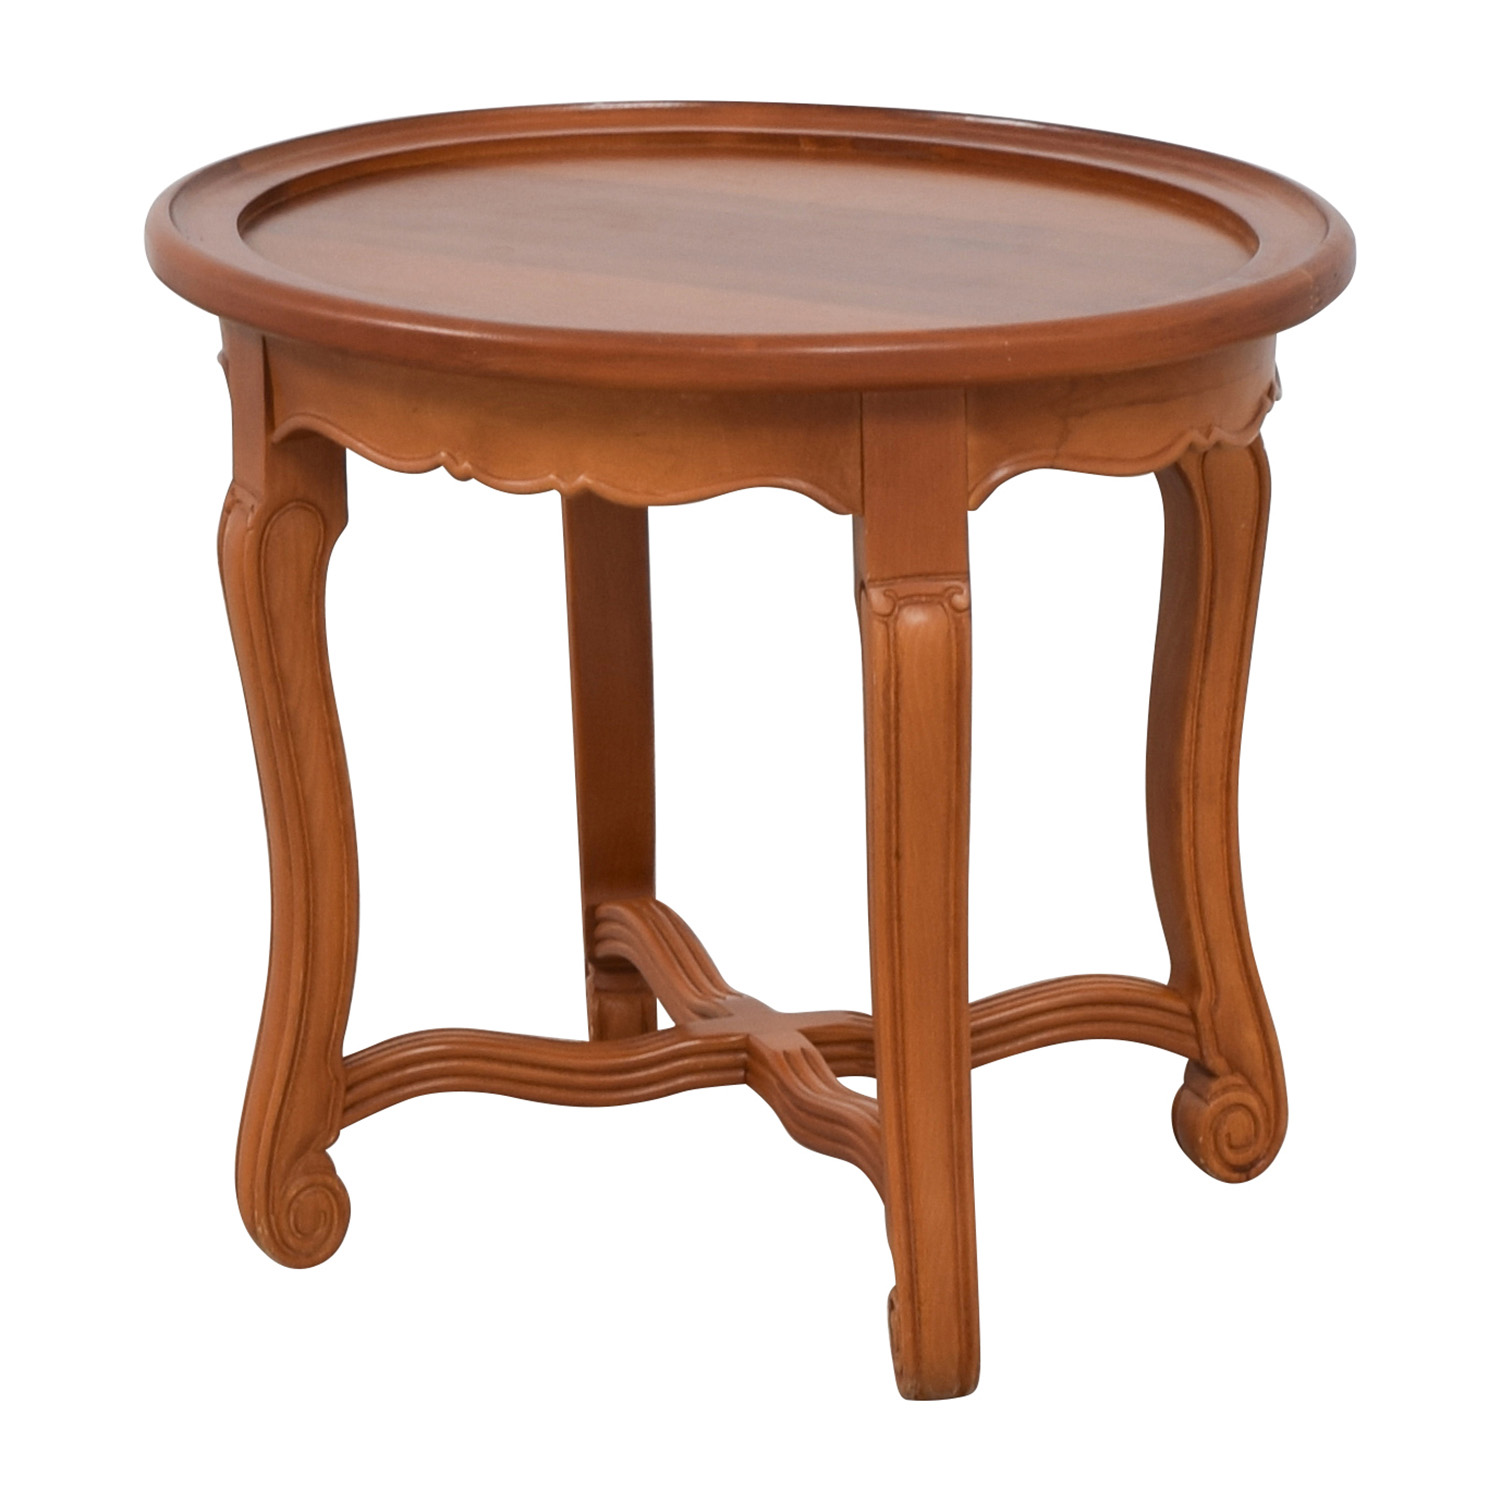 Round Antique Wood Side Table on sale